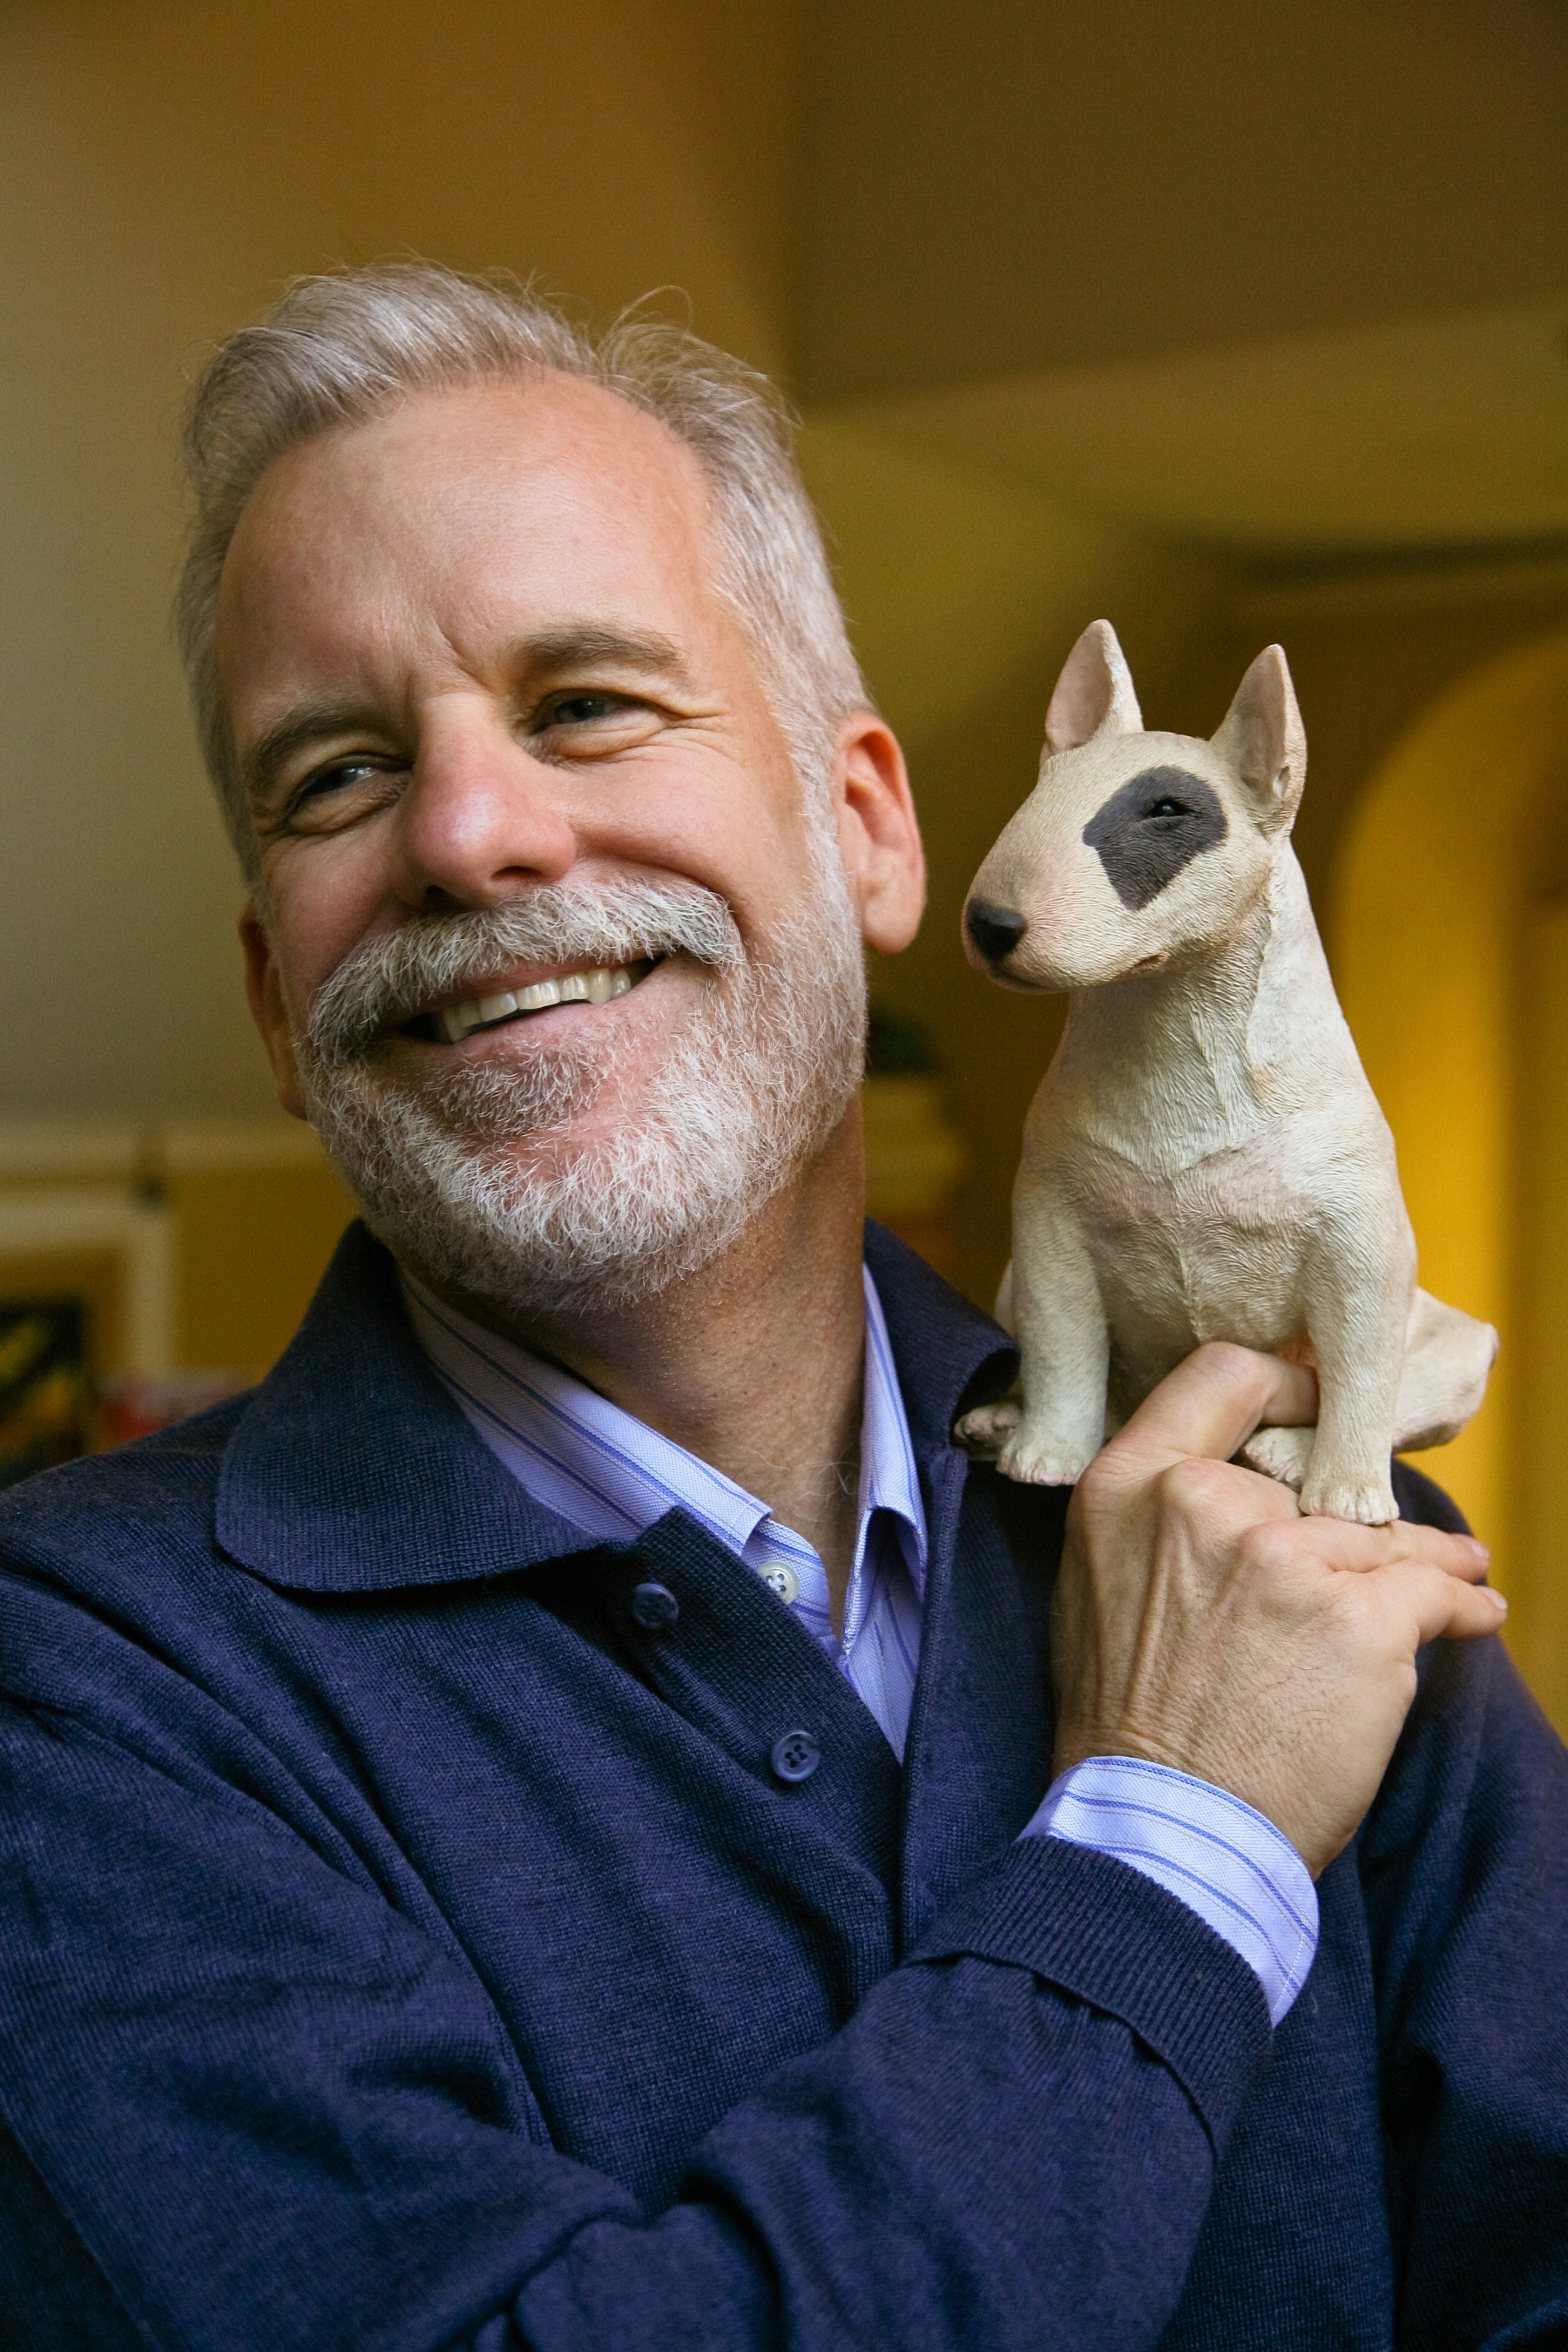 Famed Children's Author Chris Van Allsburg to Make Special Appearance at Chicago Union Station In